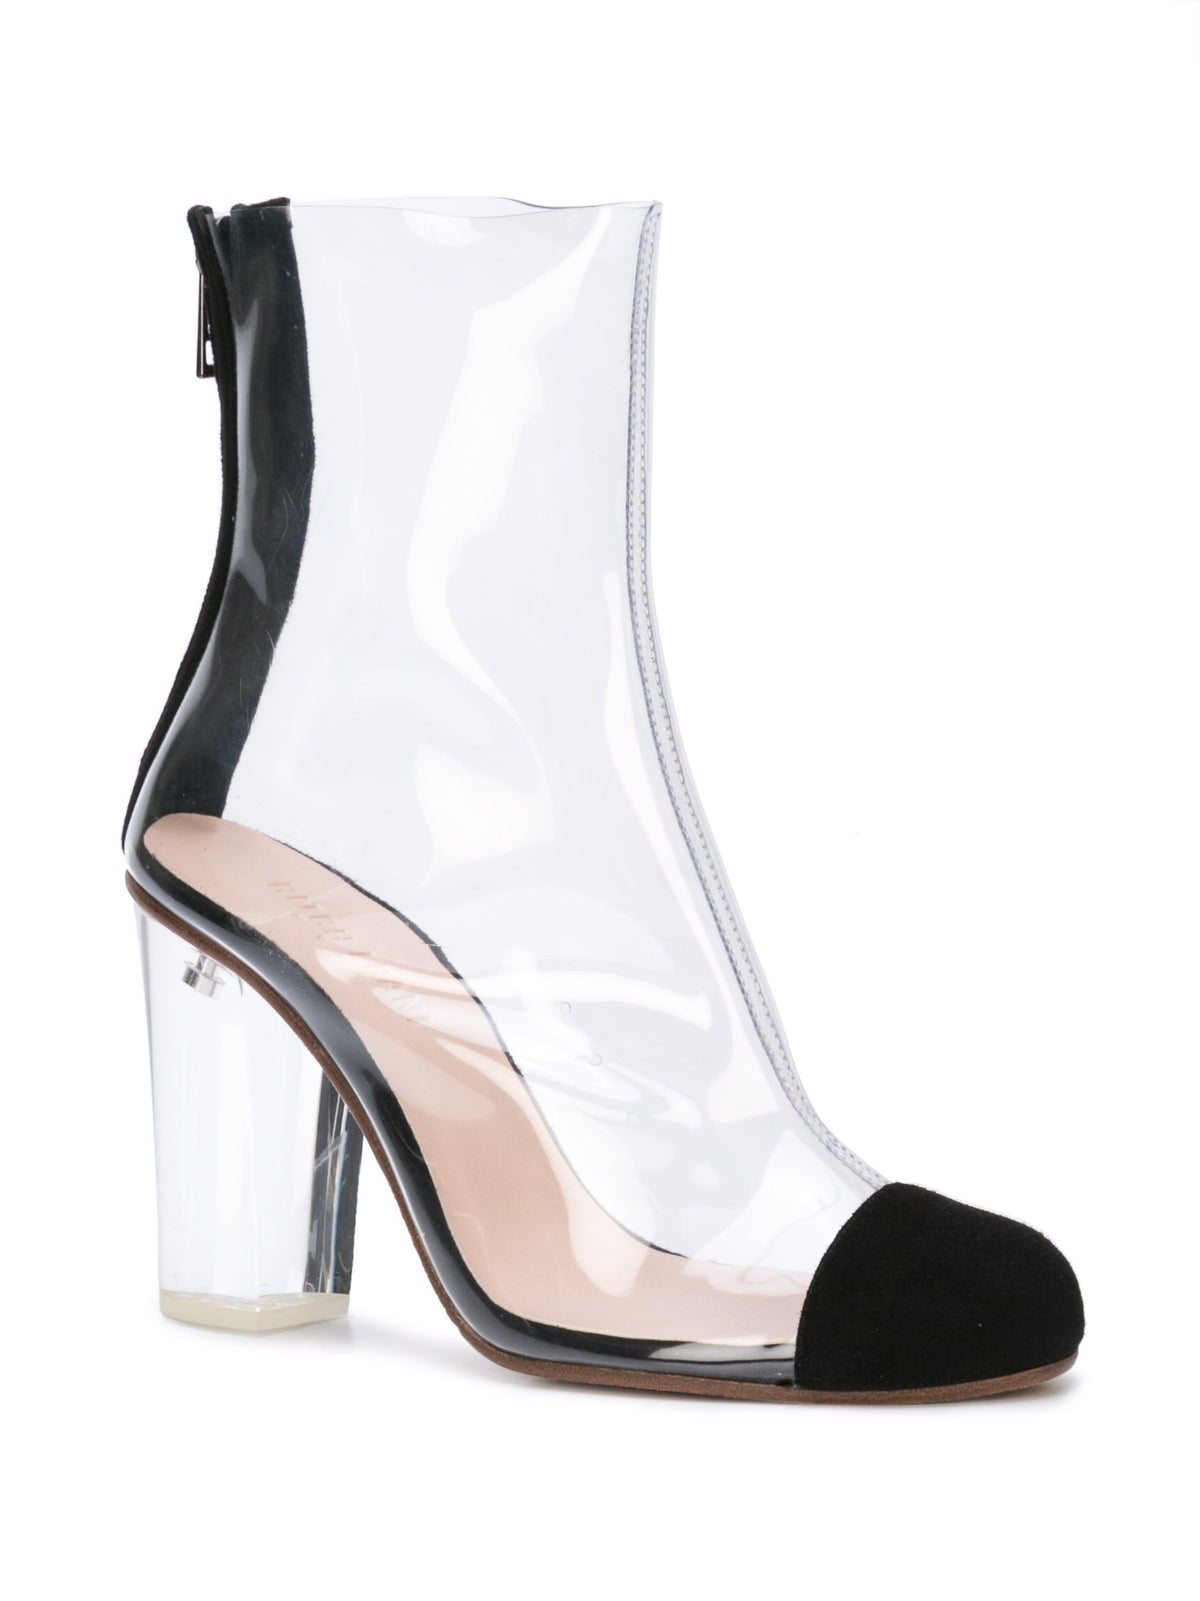 Barbarella boot with black suede toe cap & acrylic heel. Front Angle View